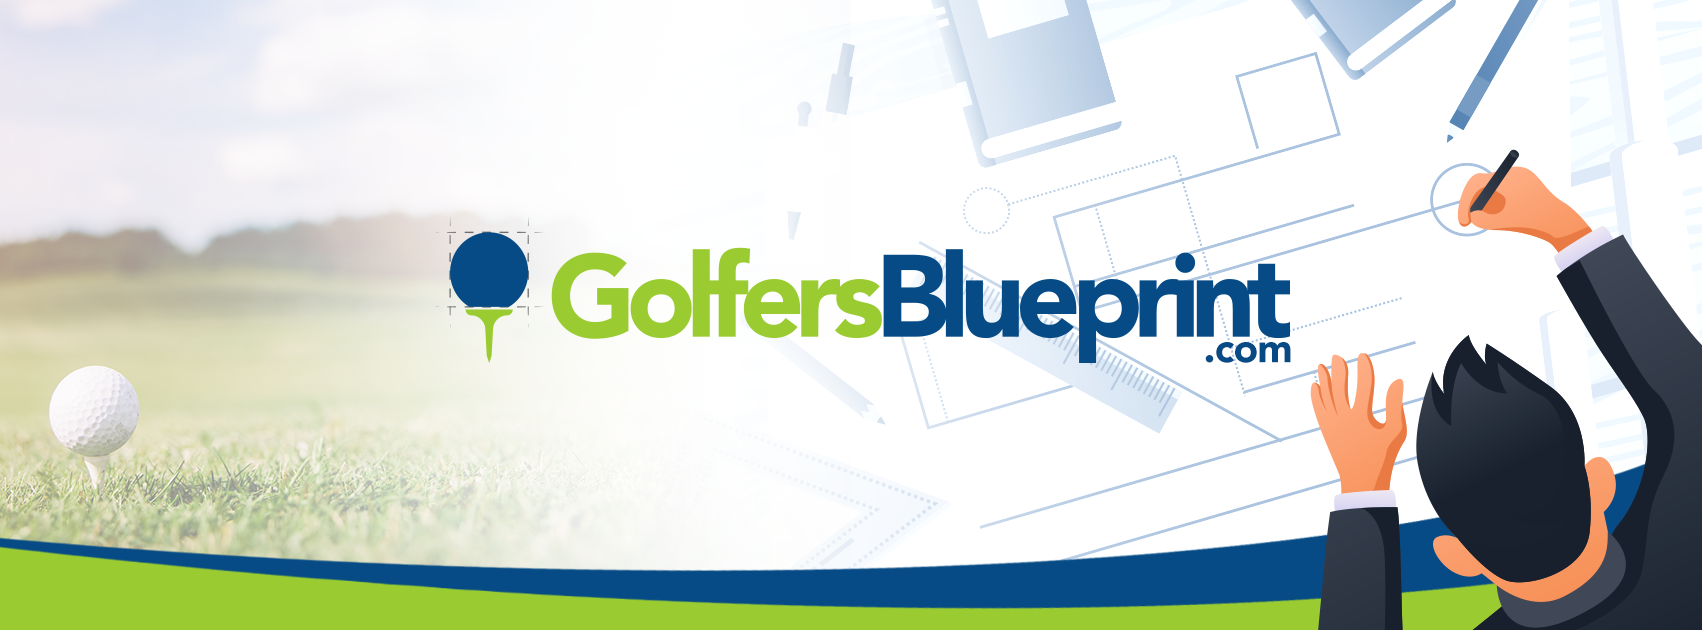 Matt Henderson and GolfersBlueprint